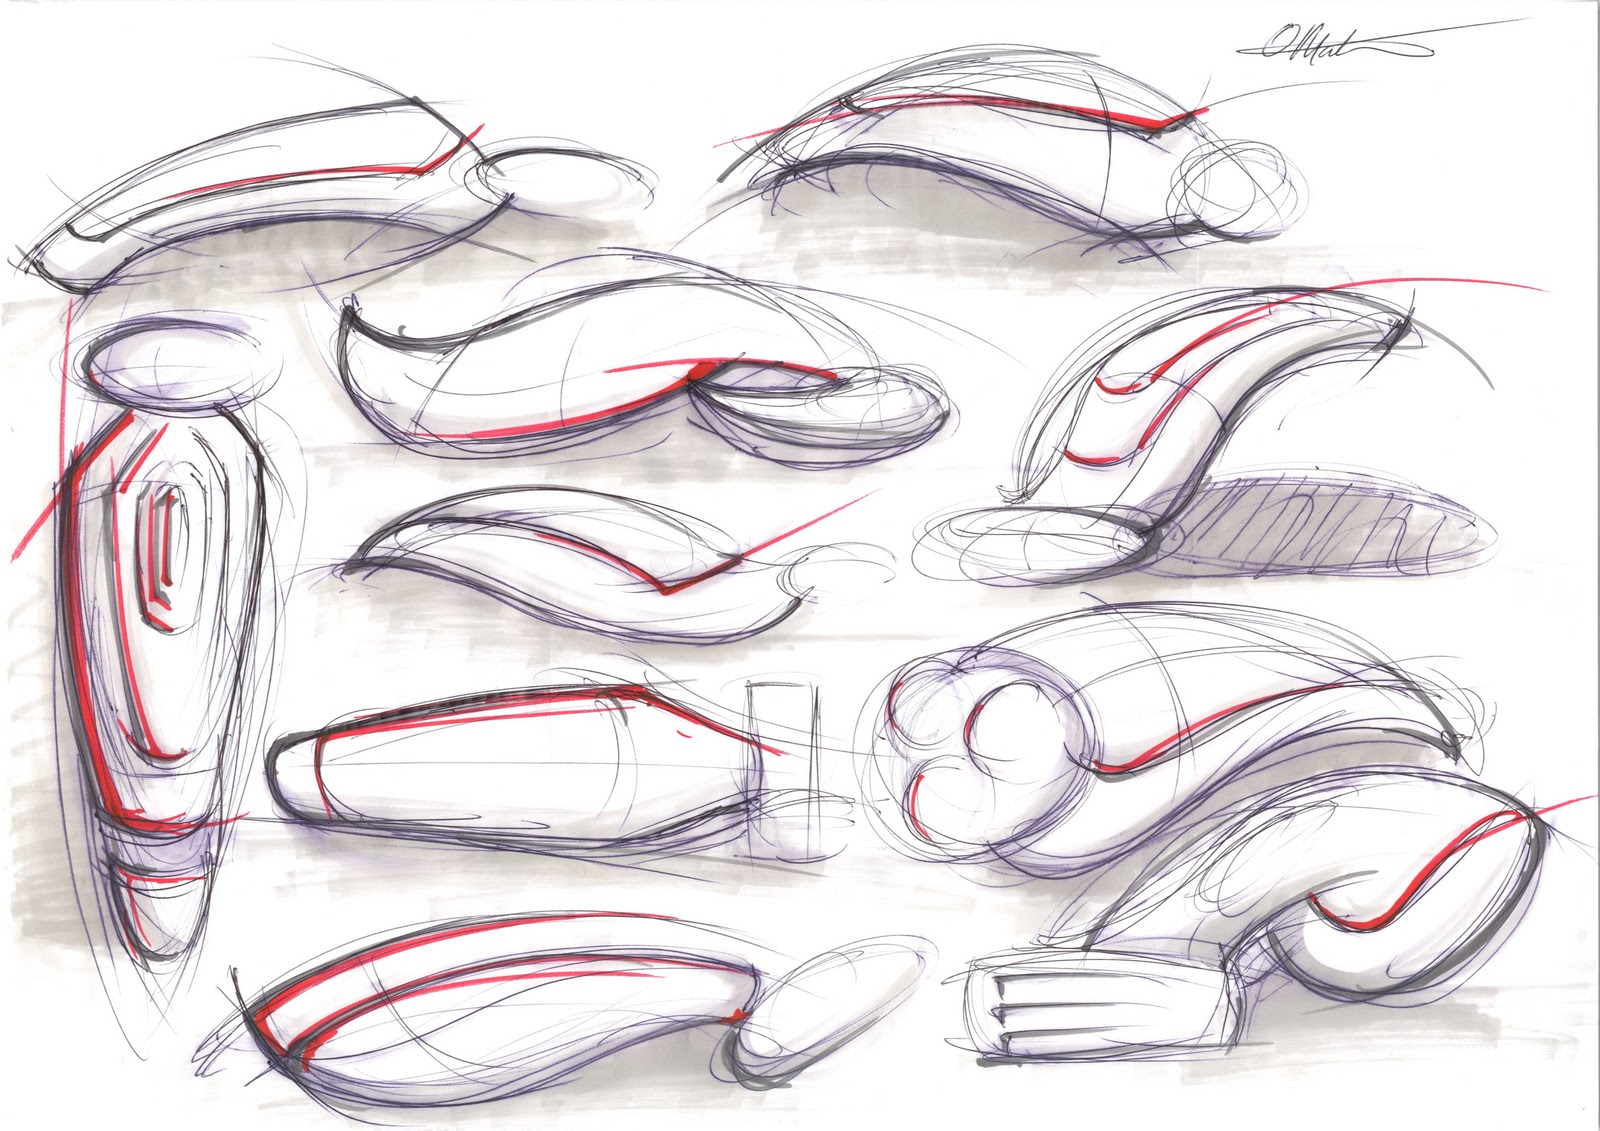 MATON DESIGN Gillete Concept Sketches